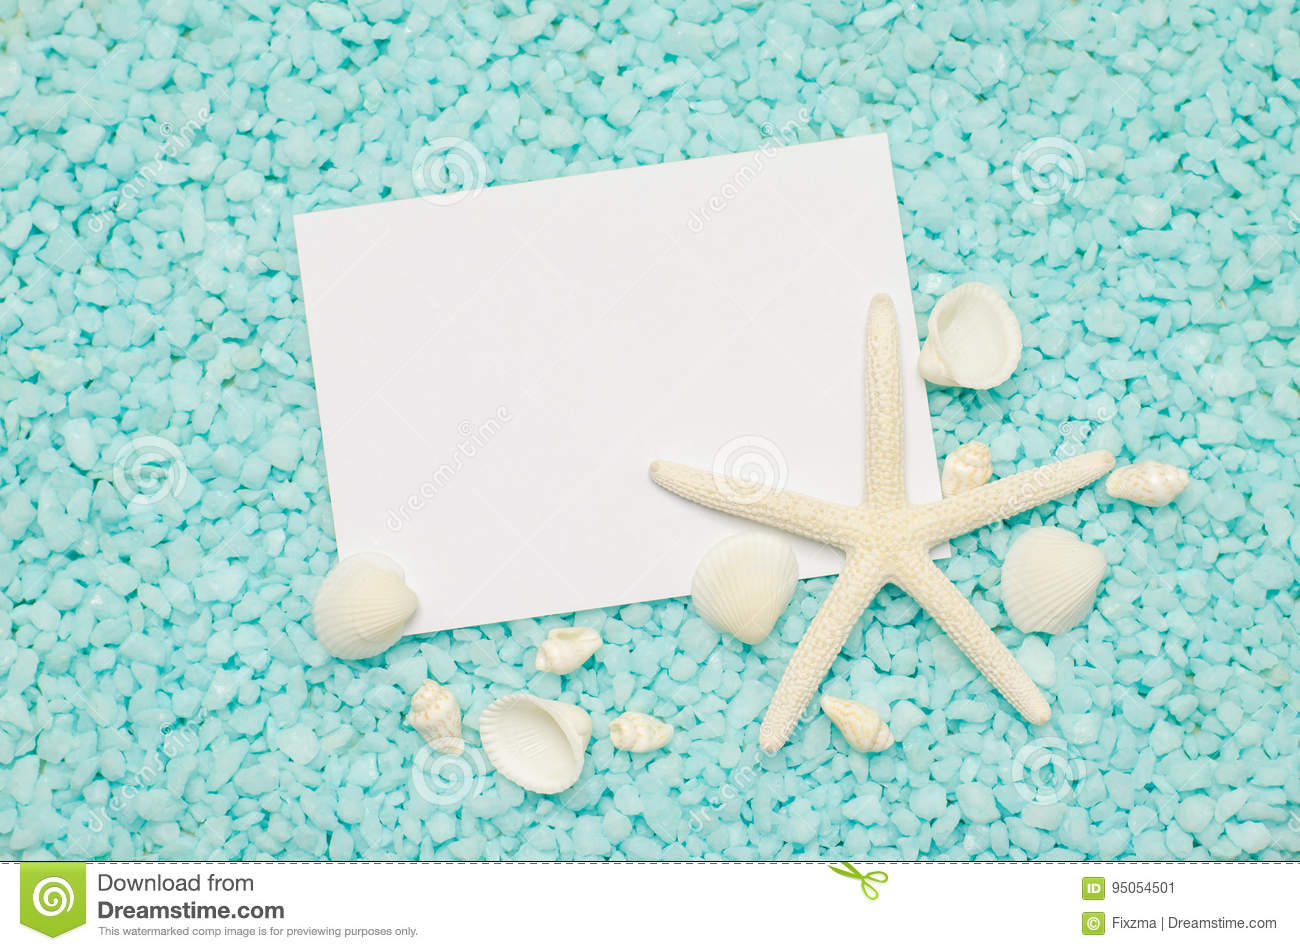 Greeting card with white starfish and seashells stock image image blank white greeting card with white starfish and seashells on blue small stone pebbles m4hsunfo